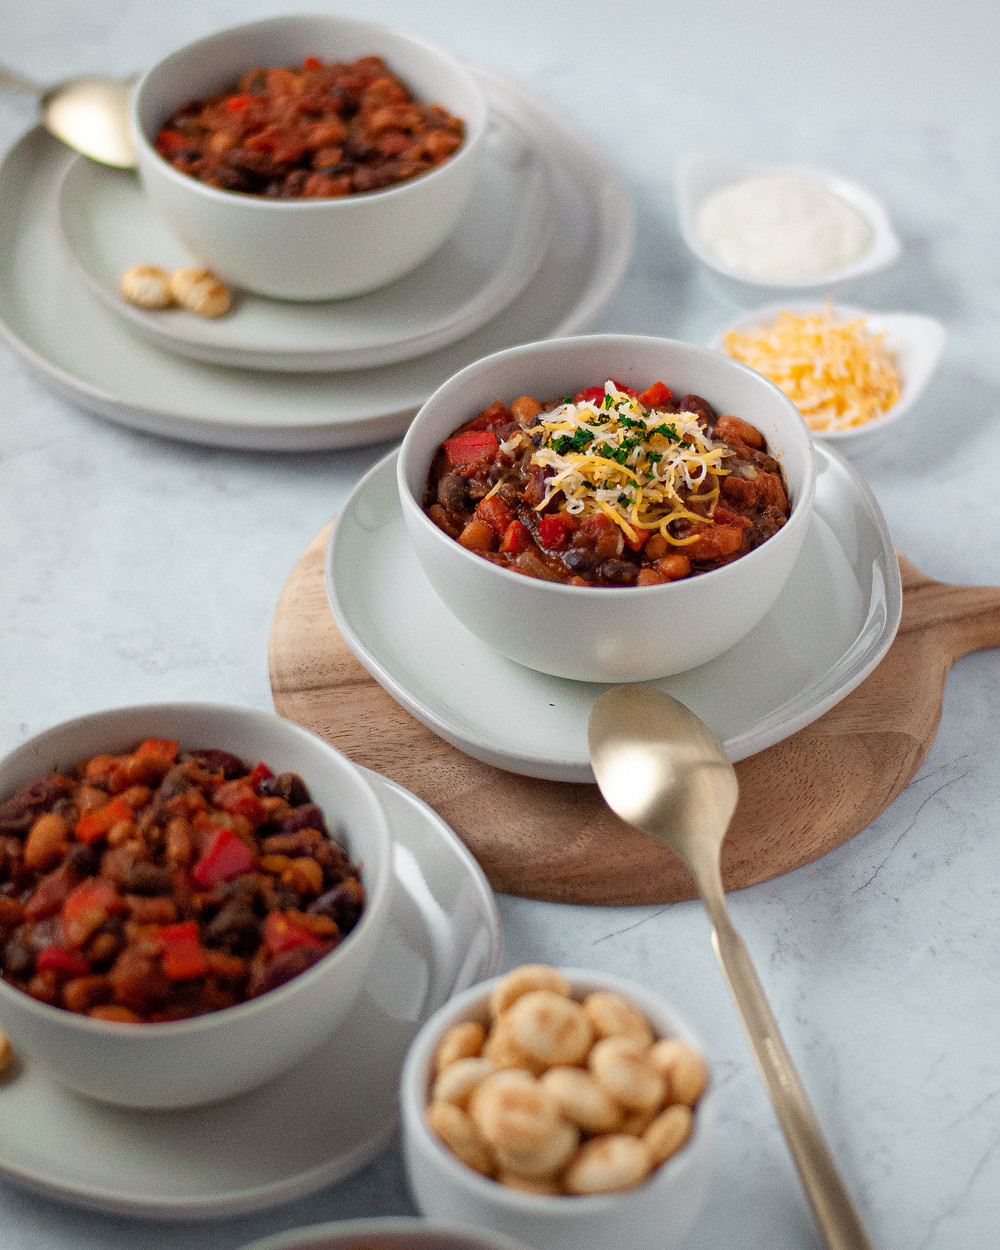 Three bowls filled with this vegetarian chili recipe topped with cheese and cilantro and a side of oyster crackers and sour cream